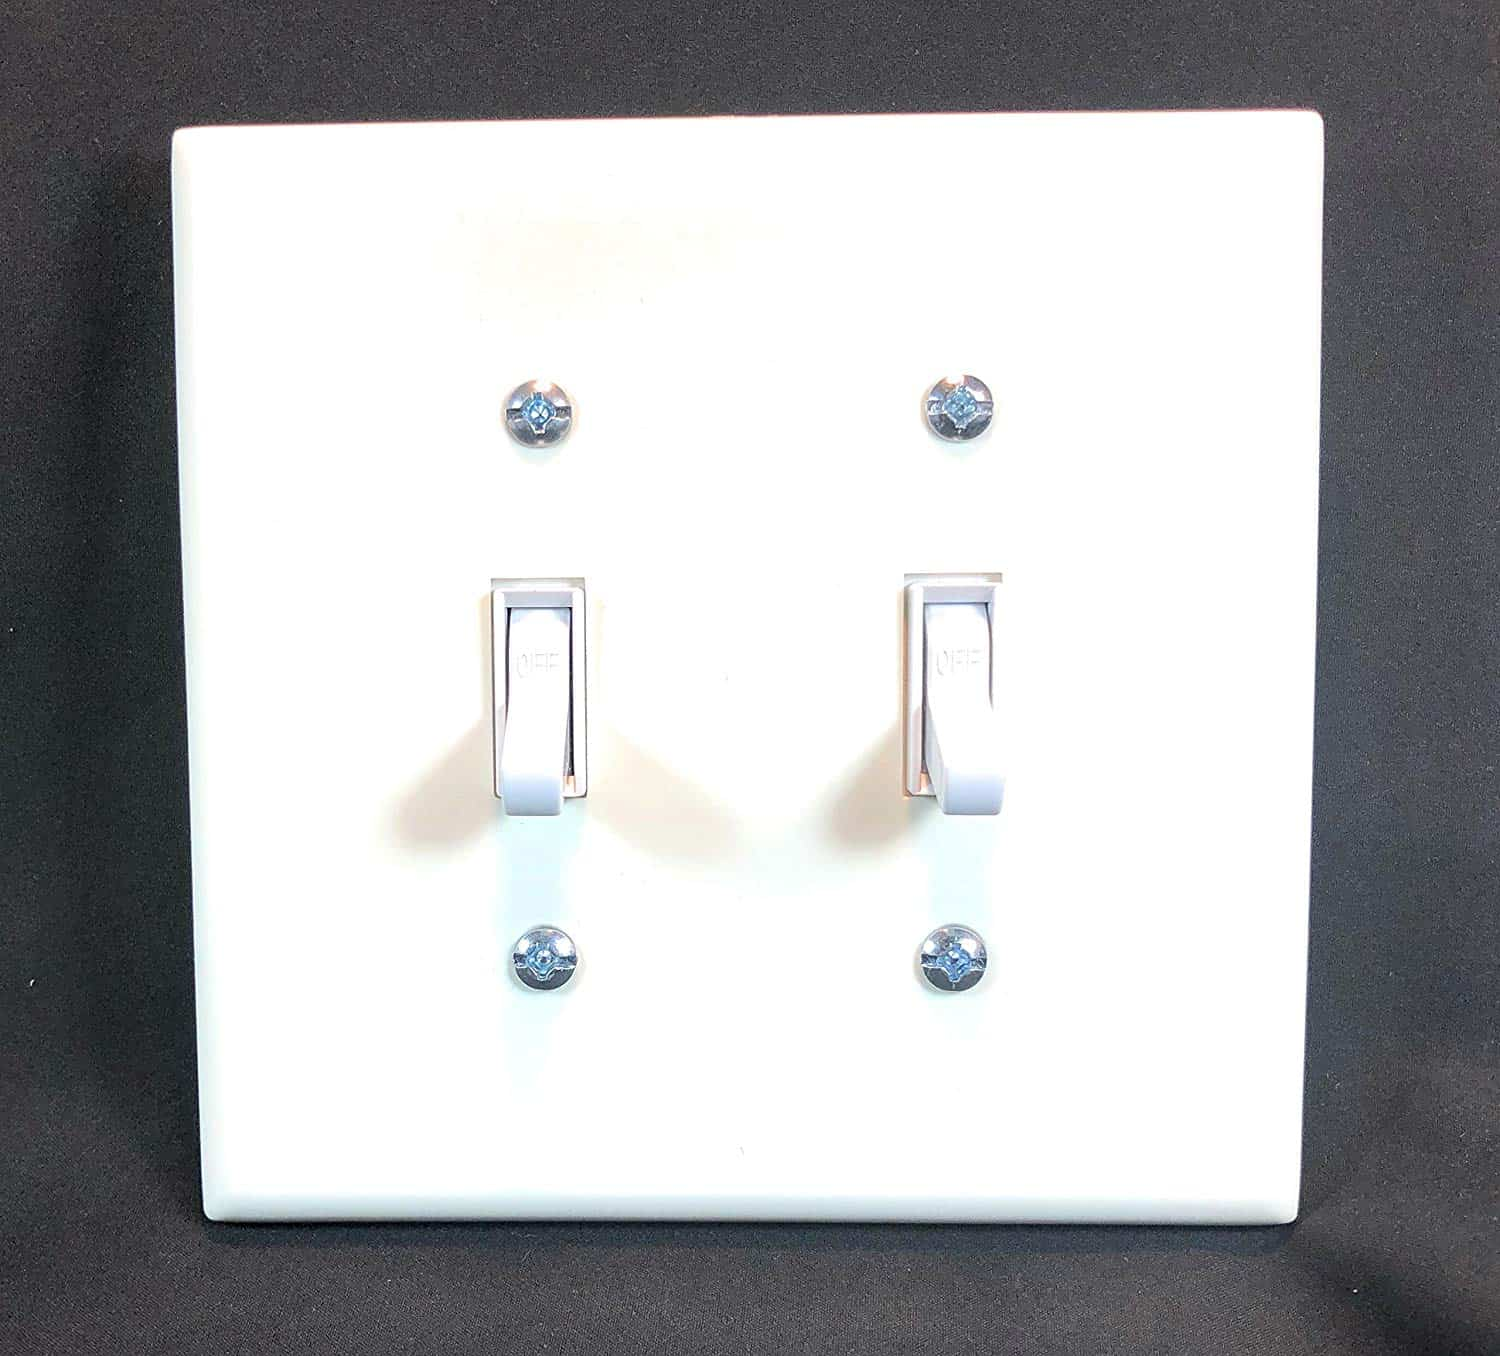 Wall Cover Plate 2 Gang White Plastic 1 Pack Cable